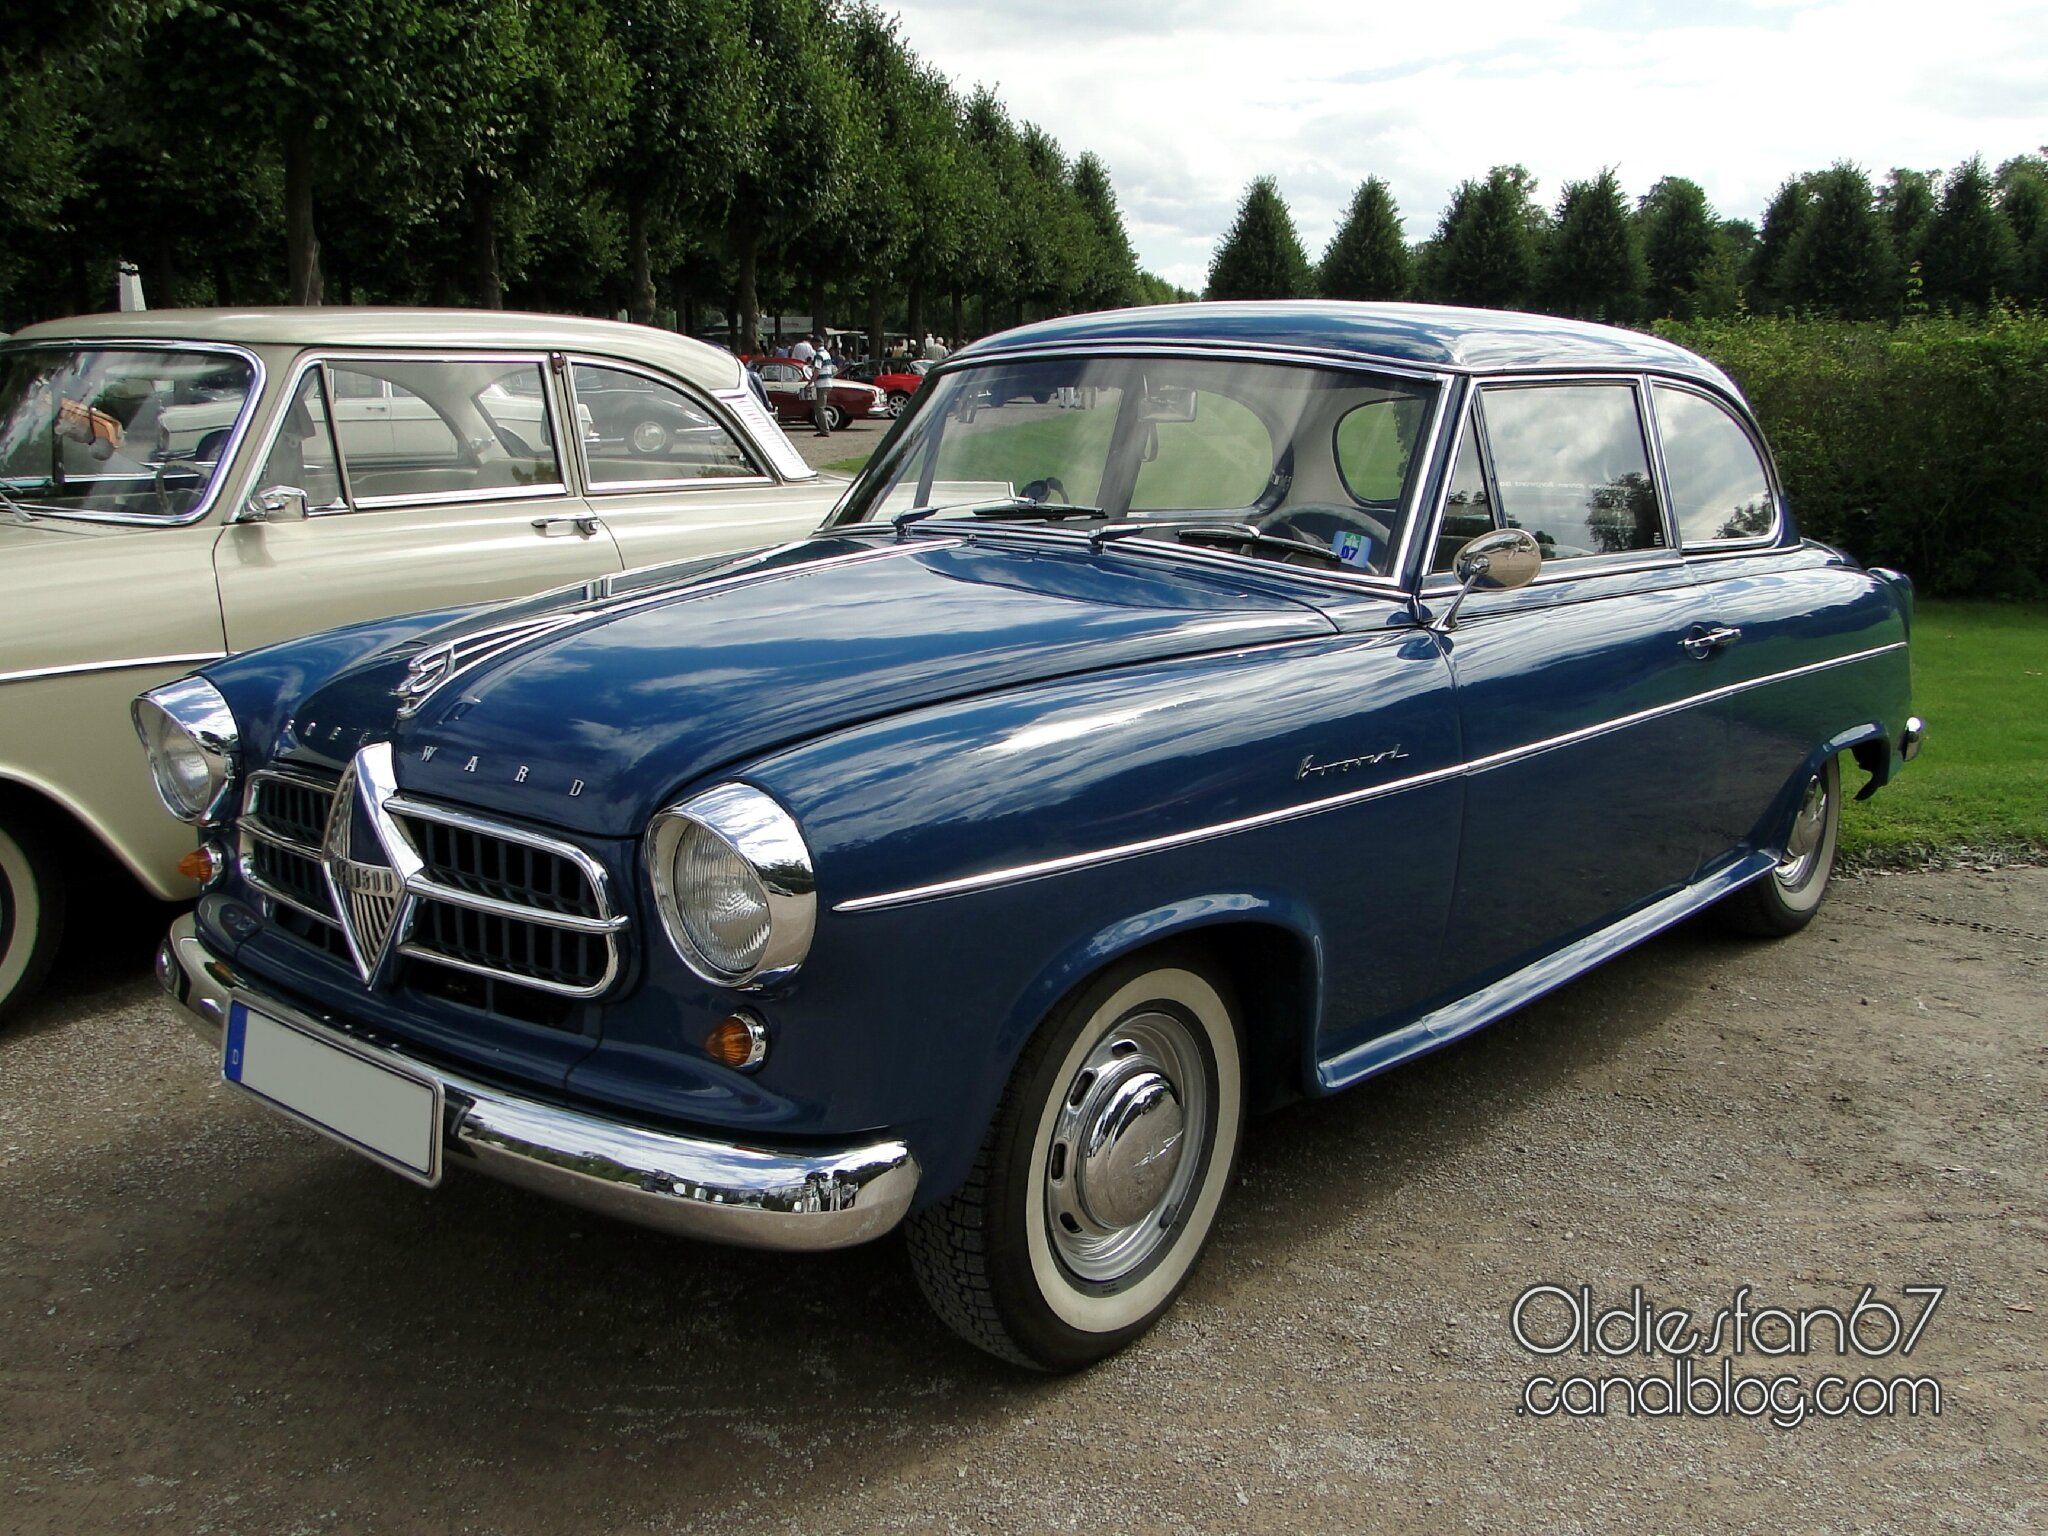 borgward hansa 1500 isabella de luxe 1954 1957 oldiesfan67 mon blog auto. Black Bedroom Furniture Sets. Home Design Ideas